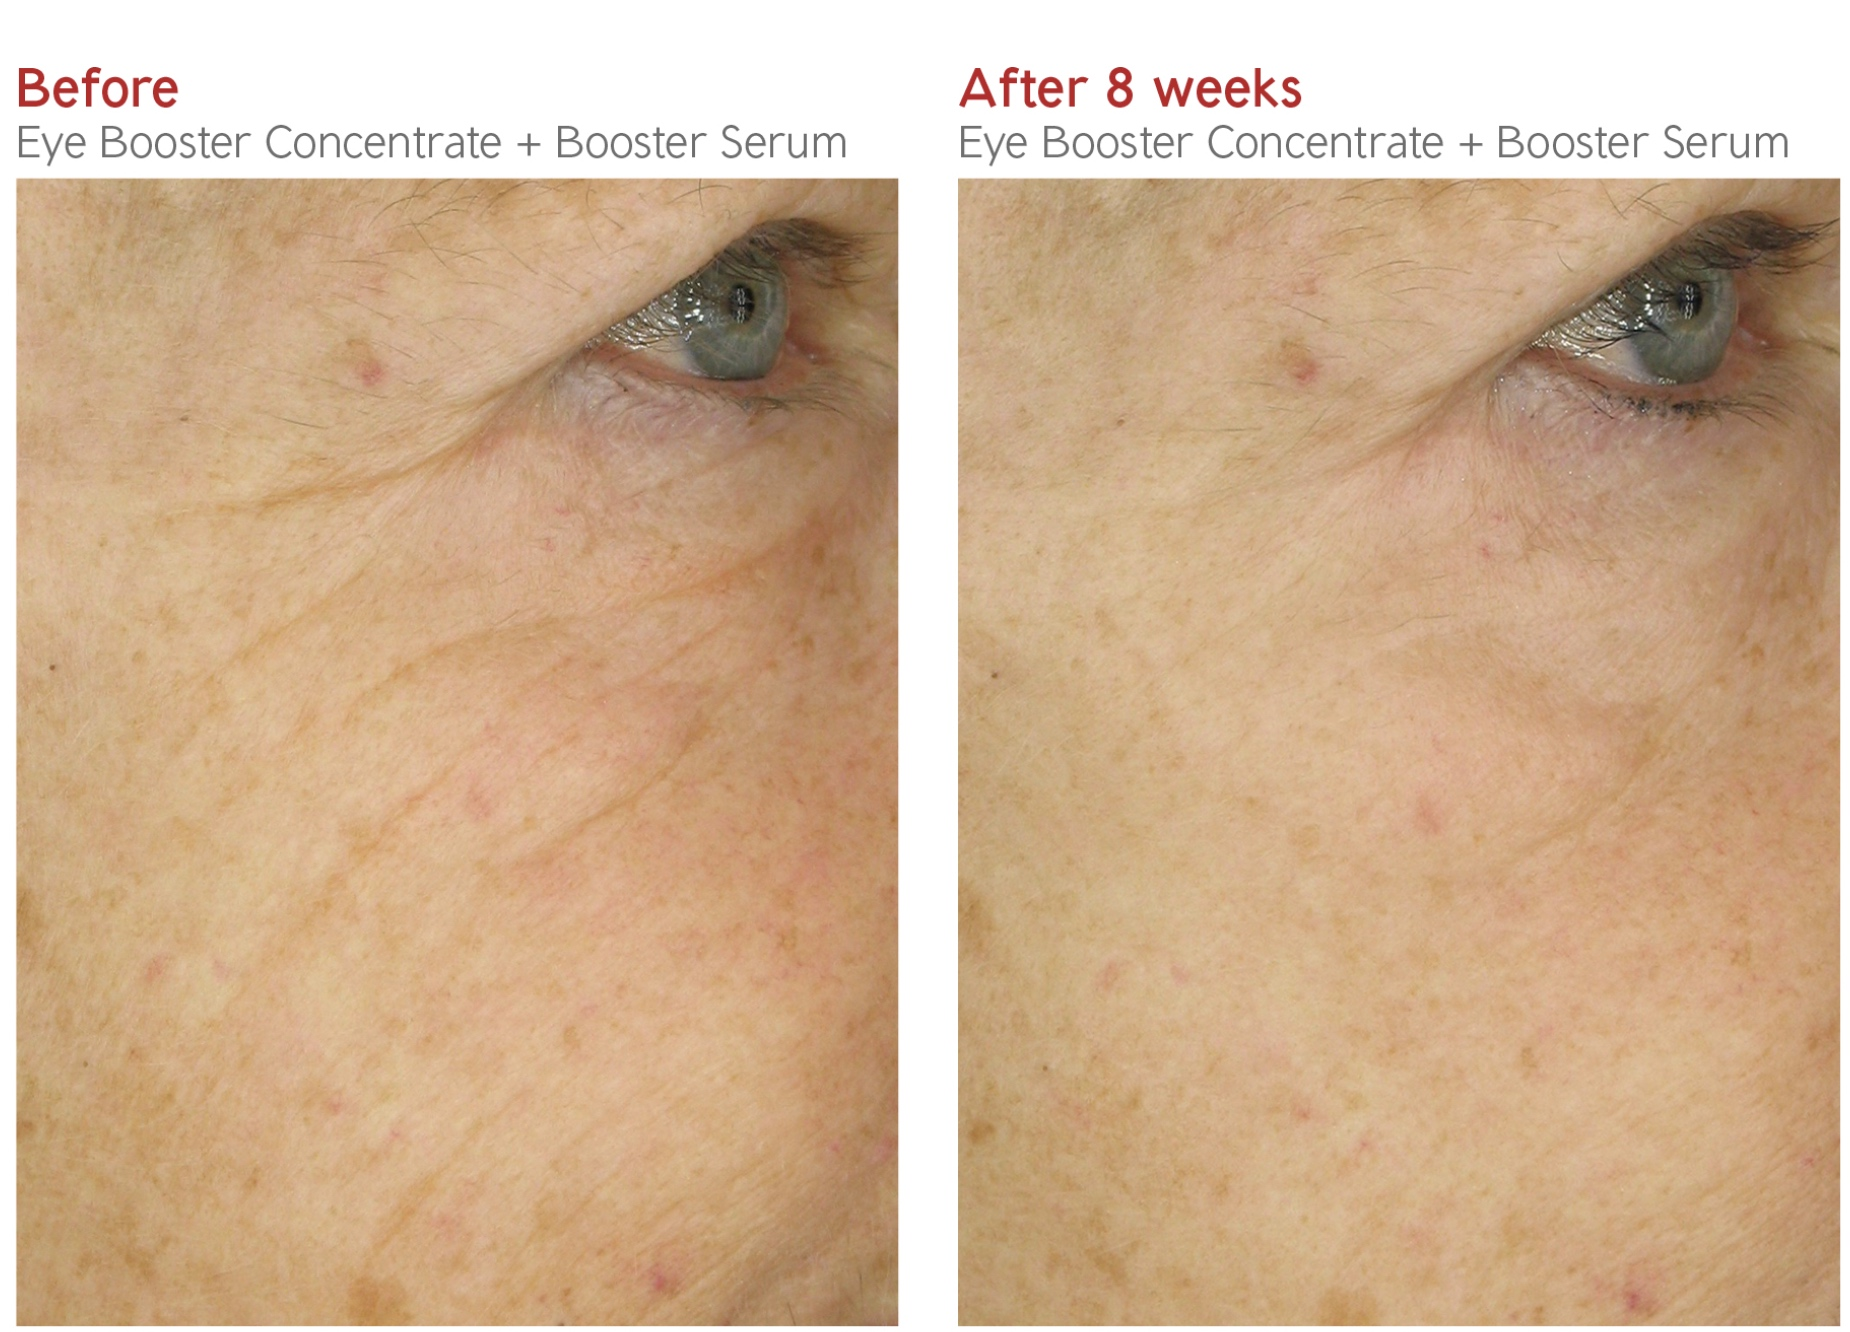 Before-After - Eye Booster Concentrate + Booster Srum